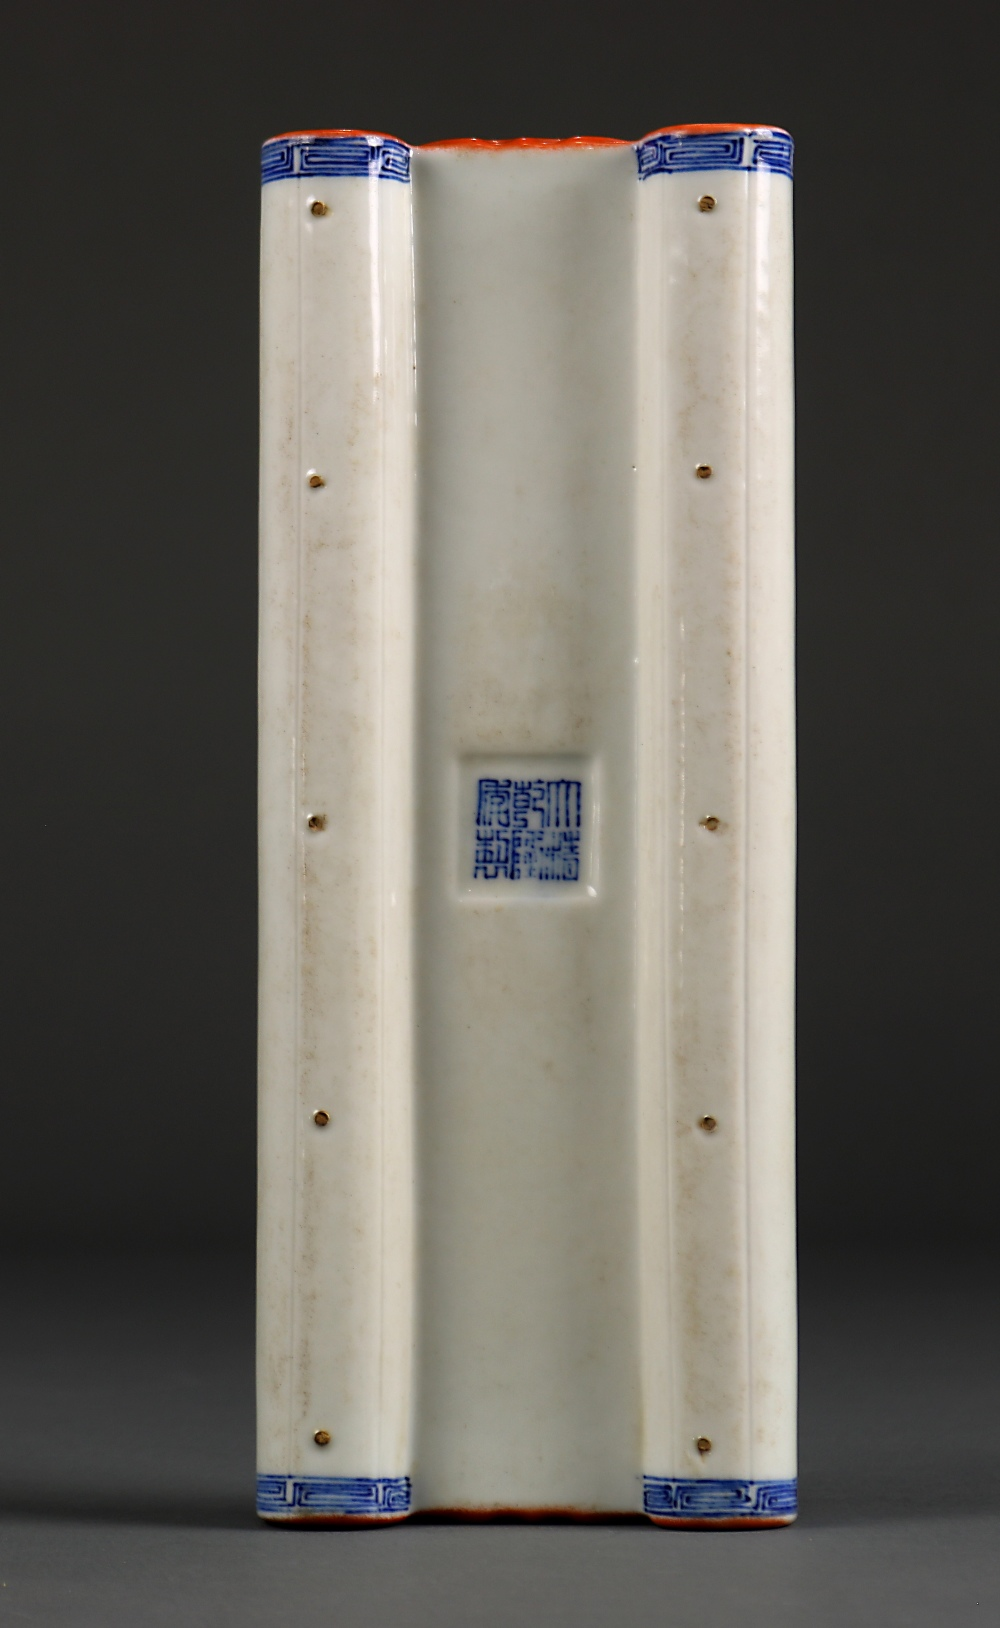 Lot 5013 - Chinese porcelain wrist rest, in the form of a scroll, the text followed by the cyclical date